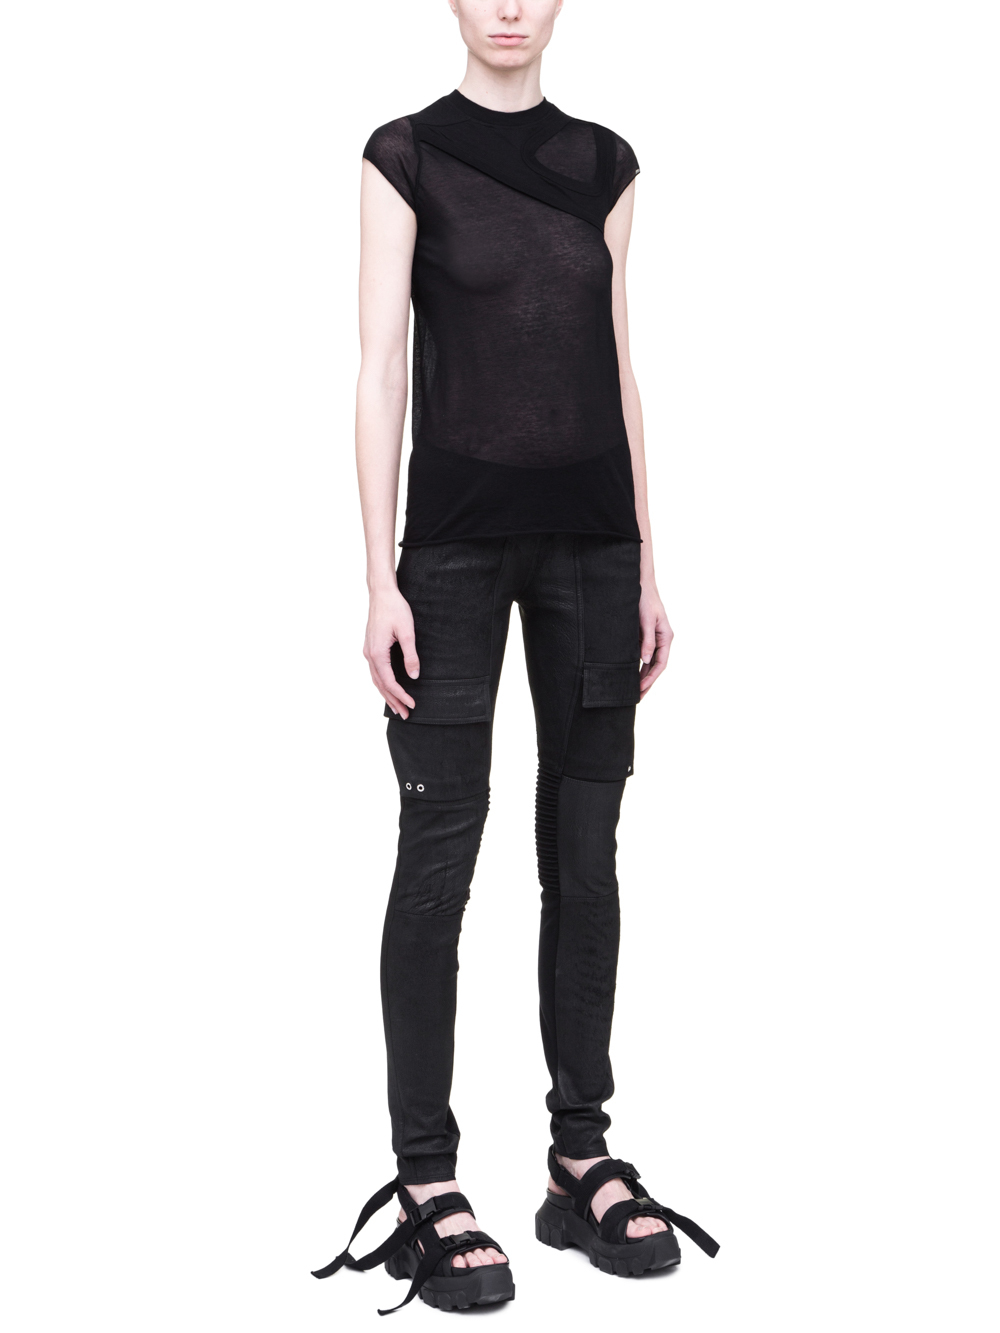 RICK OWENS SS19 BABEL ONE AND ONE QUARTER TEE IN BLACK LIGHT COTTON